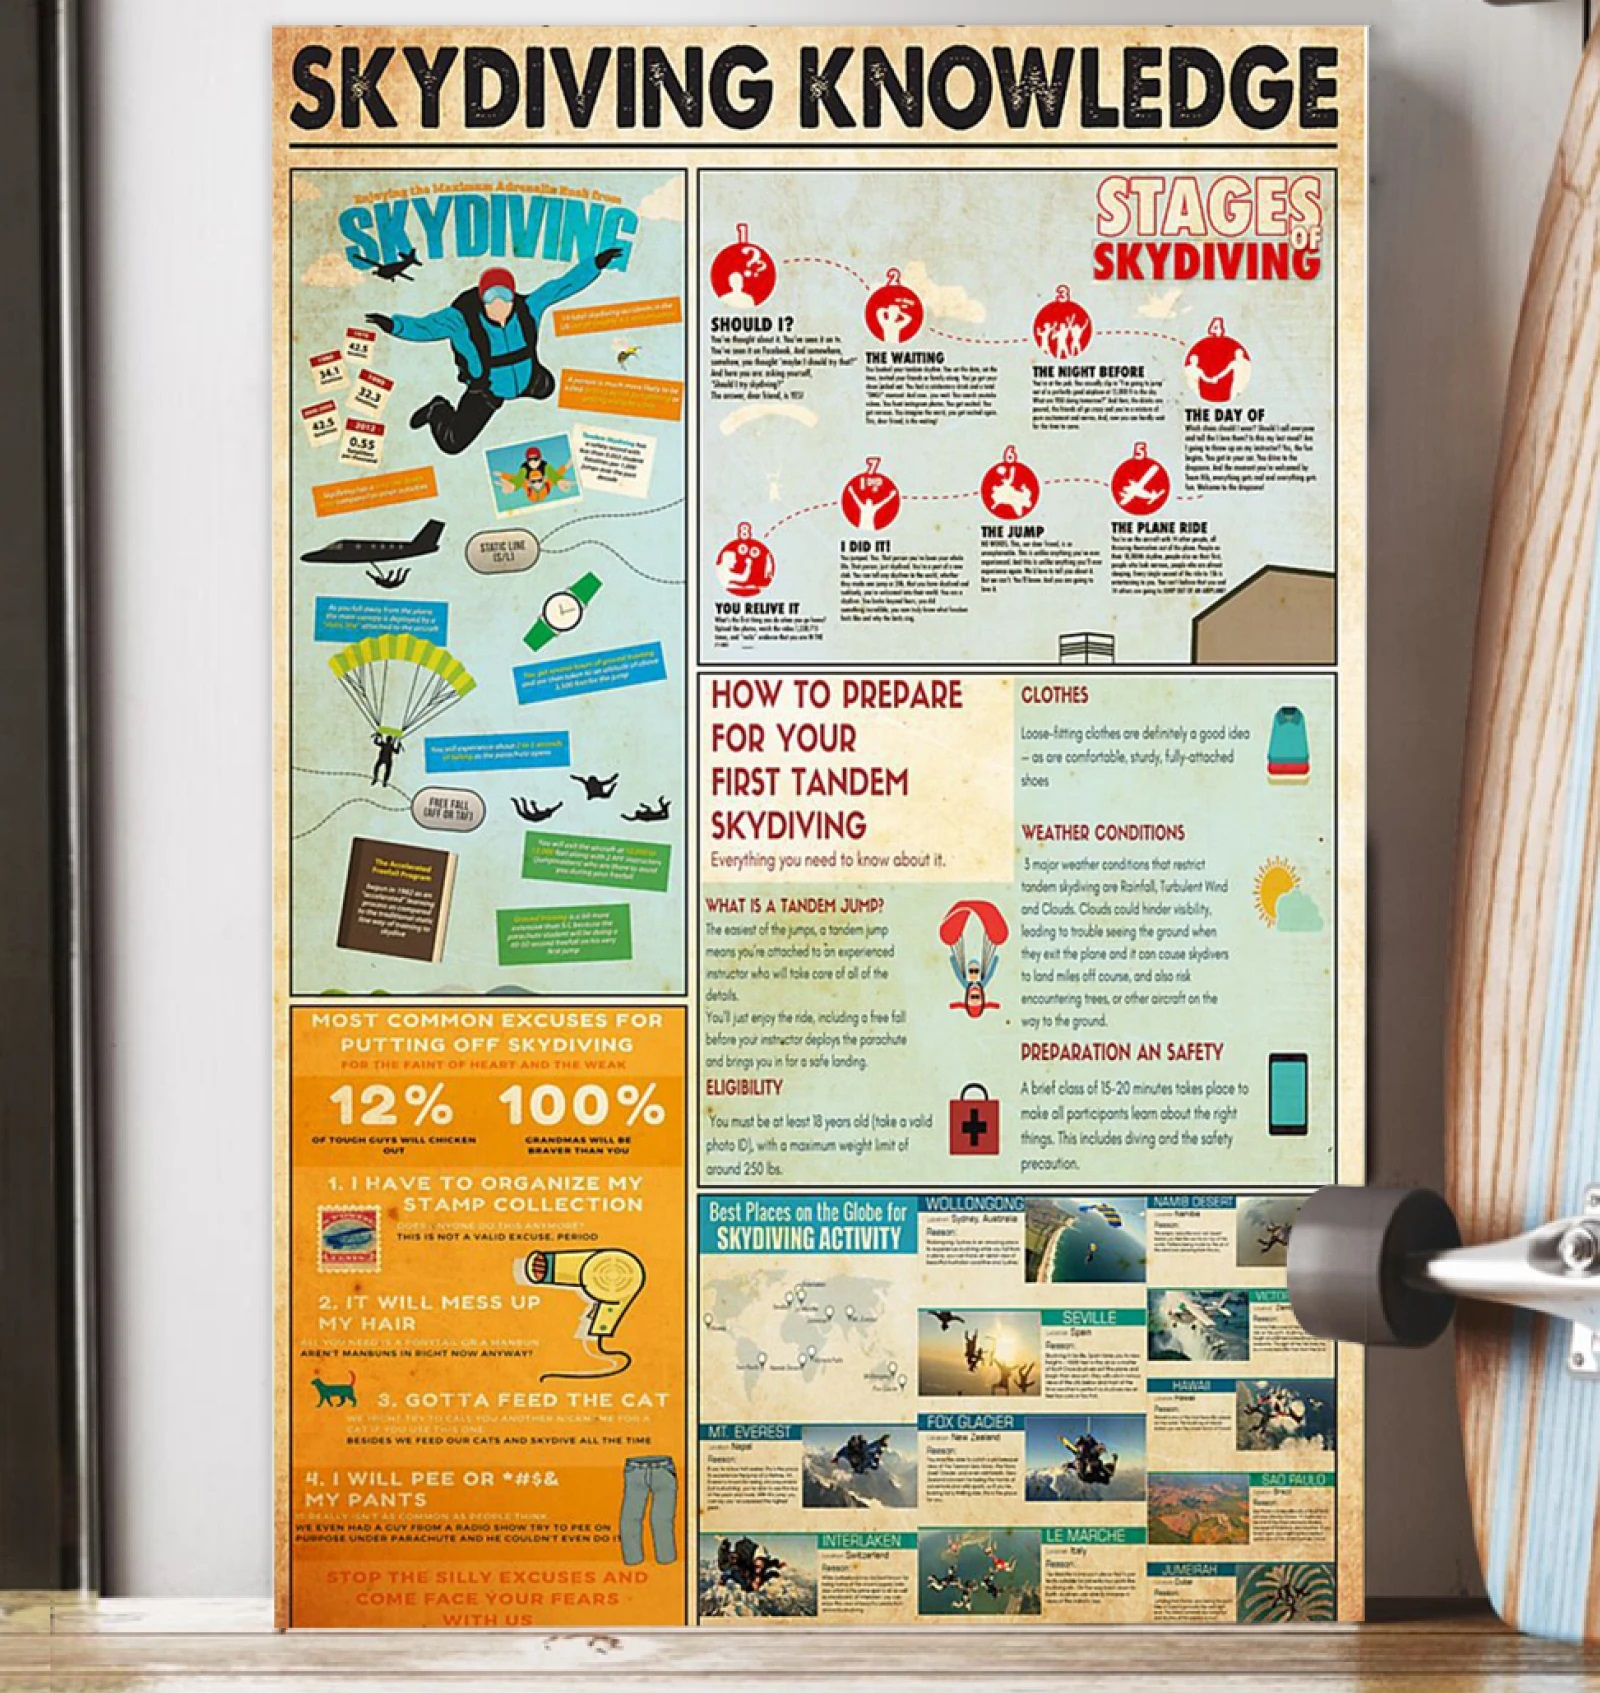 Skydiving Knowledge Poster - tml